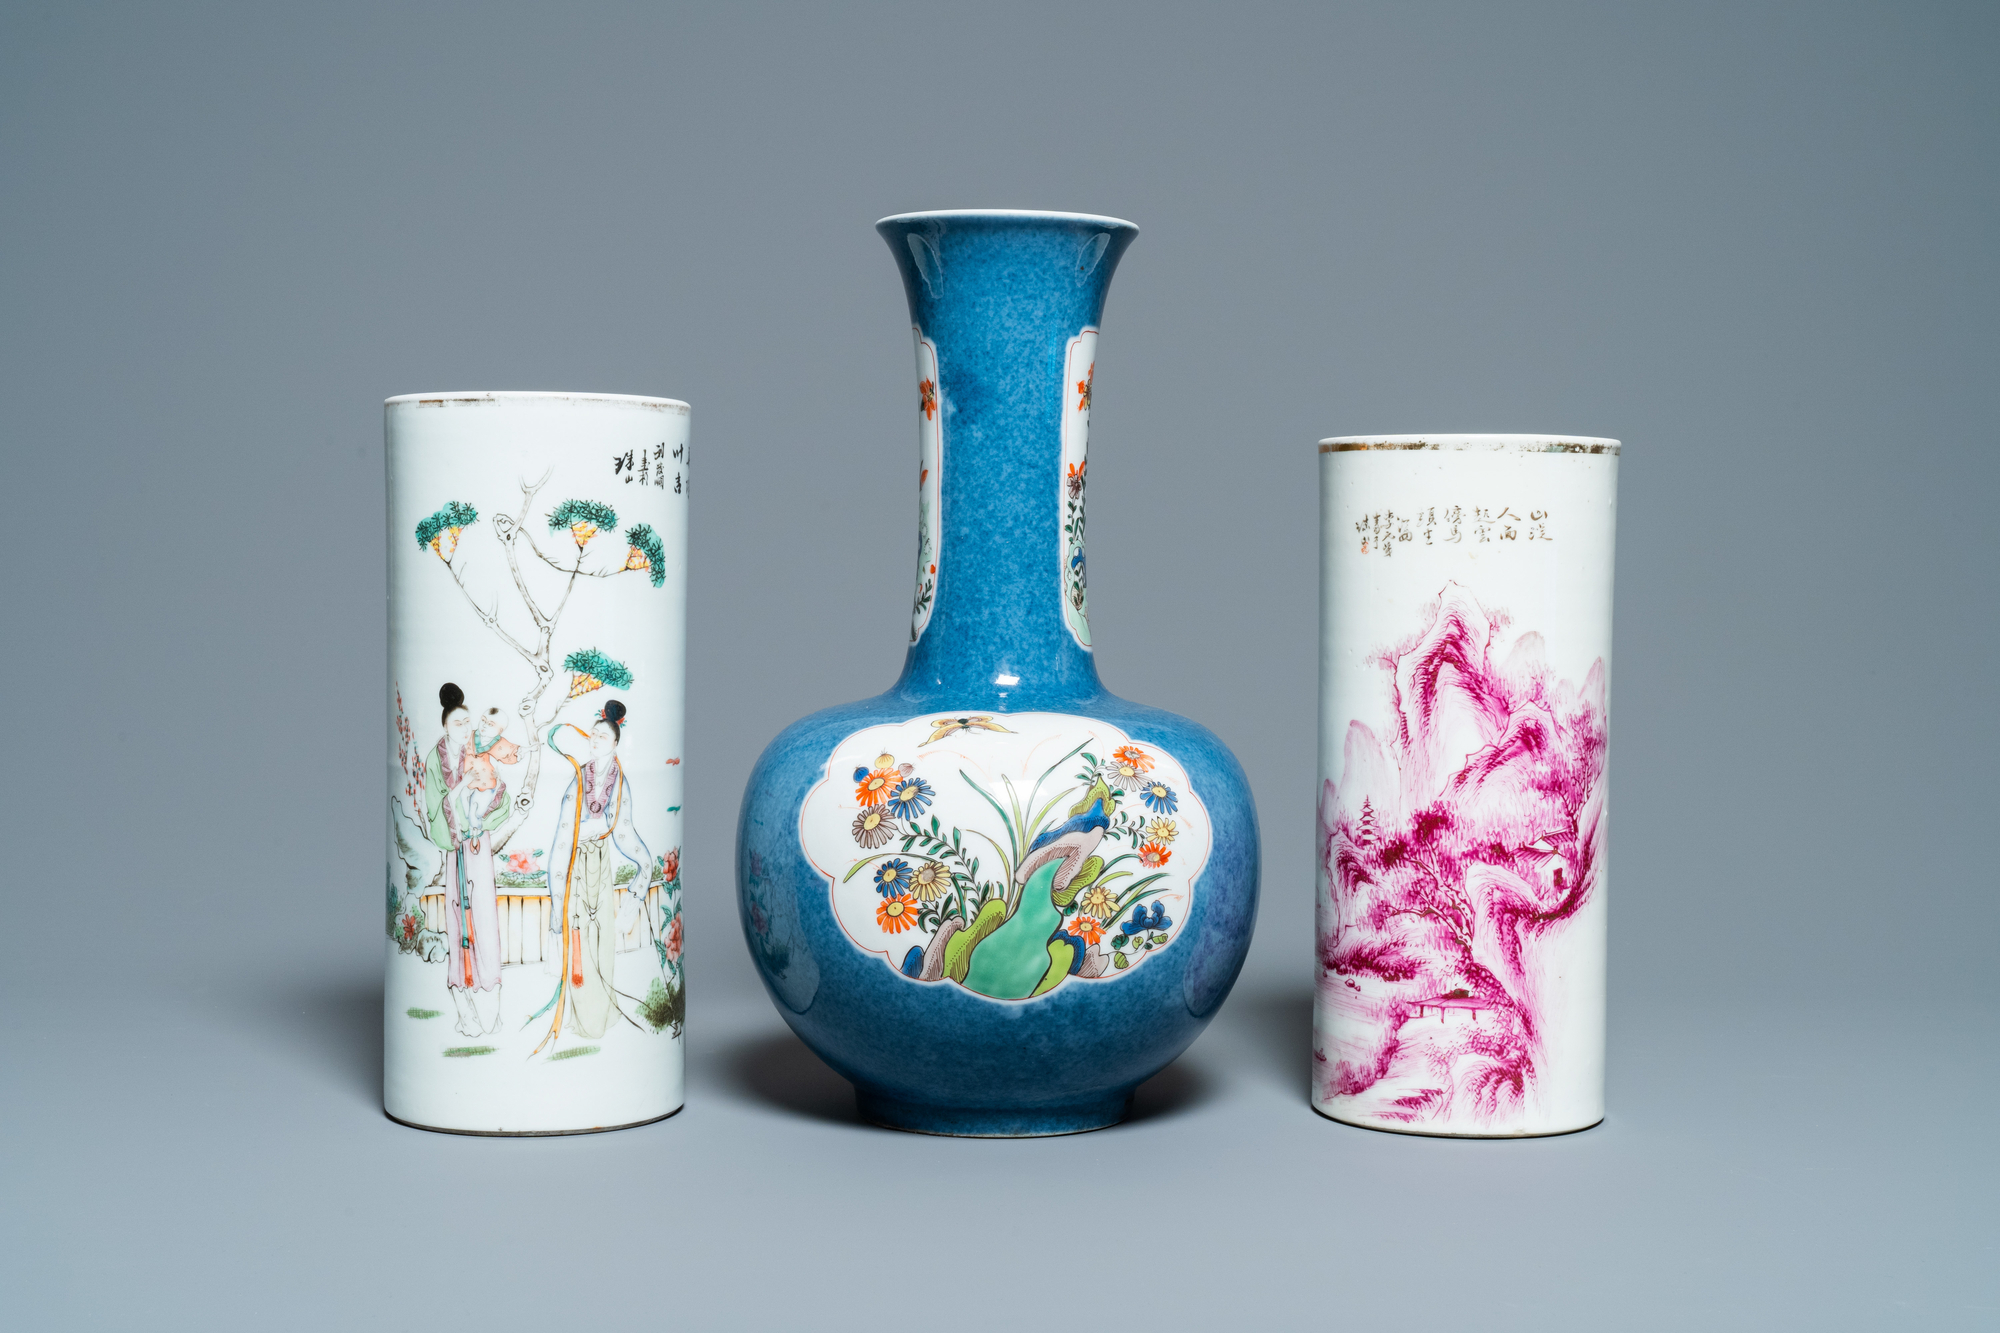 Six Chinese famille rose and verte vases, 19/20th C. - Image 8 of 13